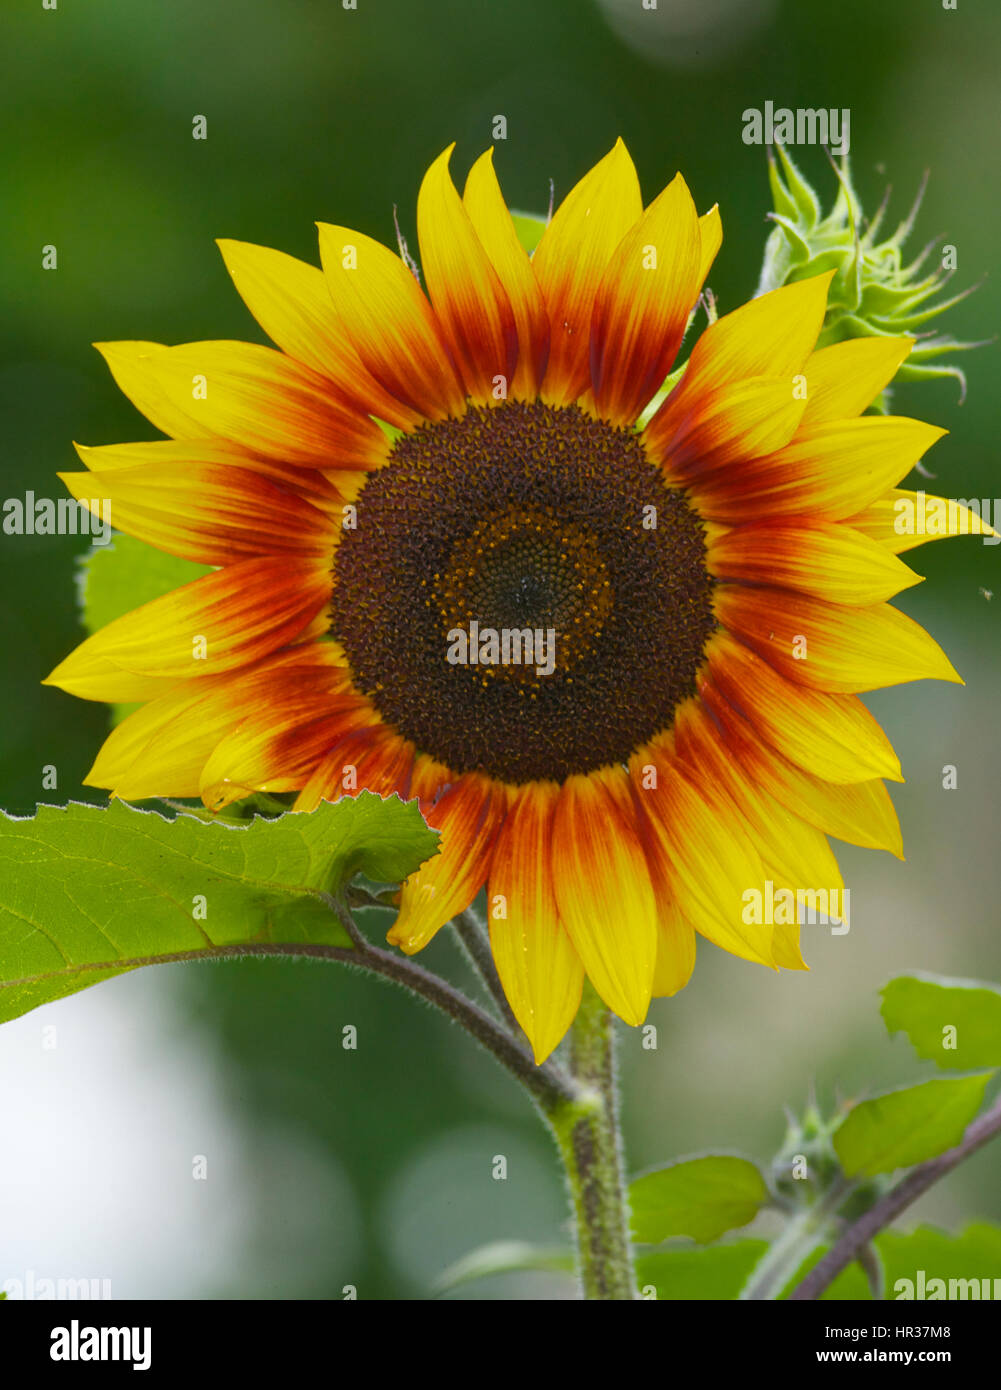 Sunflower and green plants in background from Far Eastern Russia - Stock Image